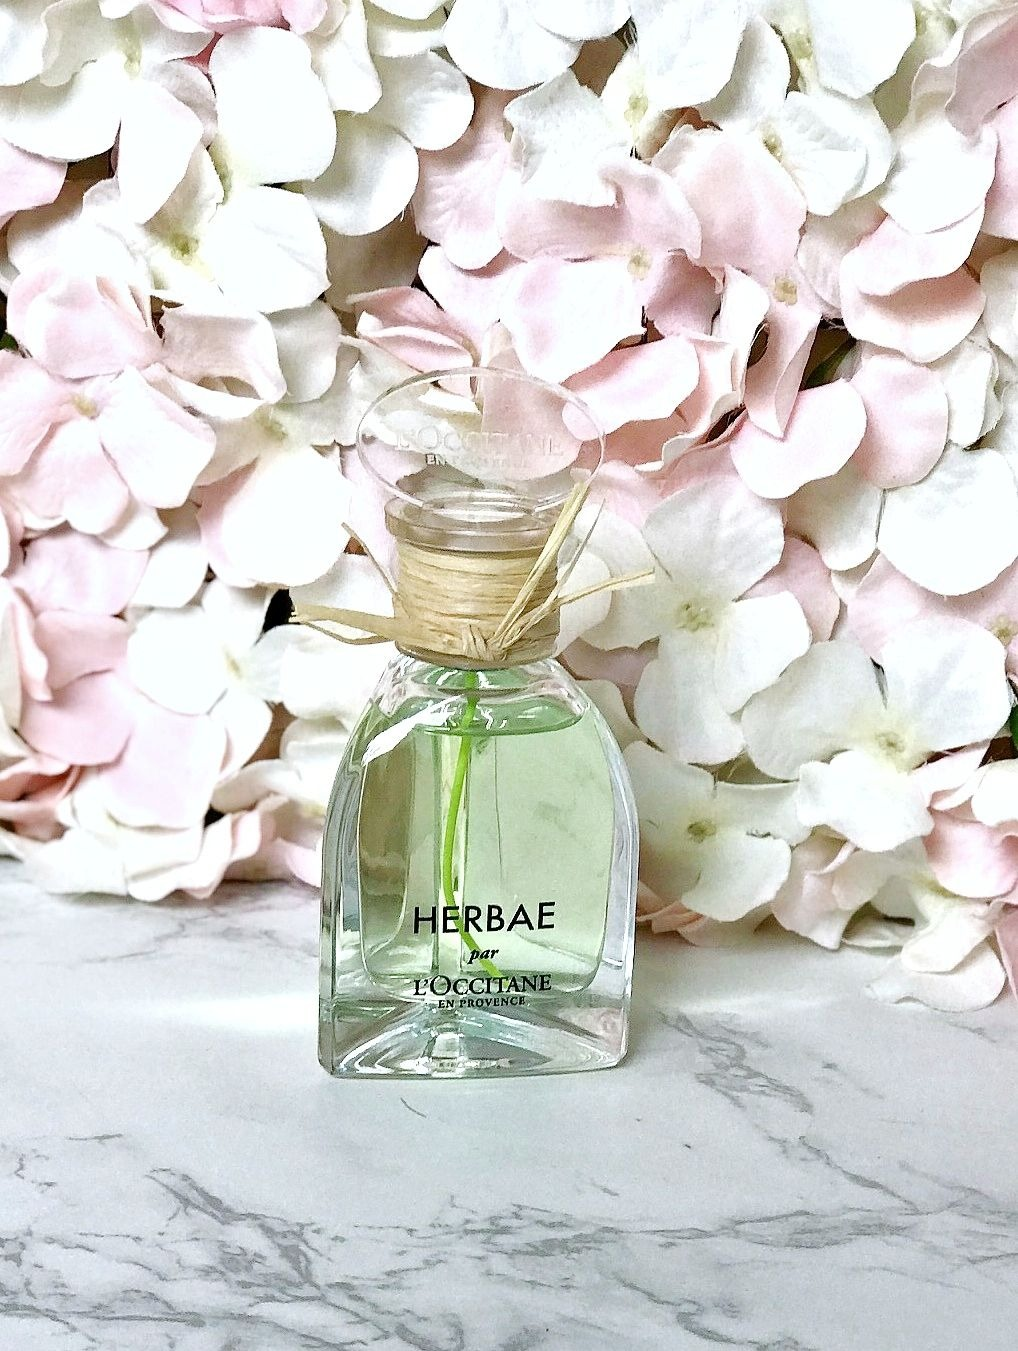 Win a 50ml bottle of Herbae Par L'Occitane Eau De Parfum